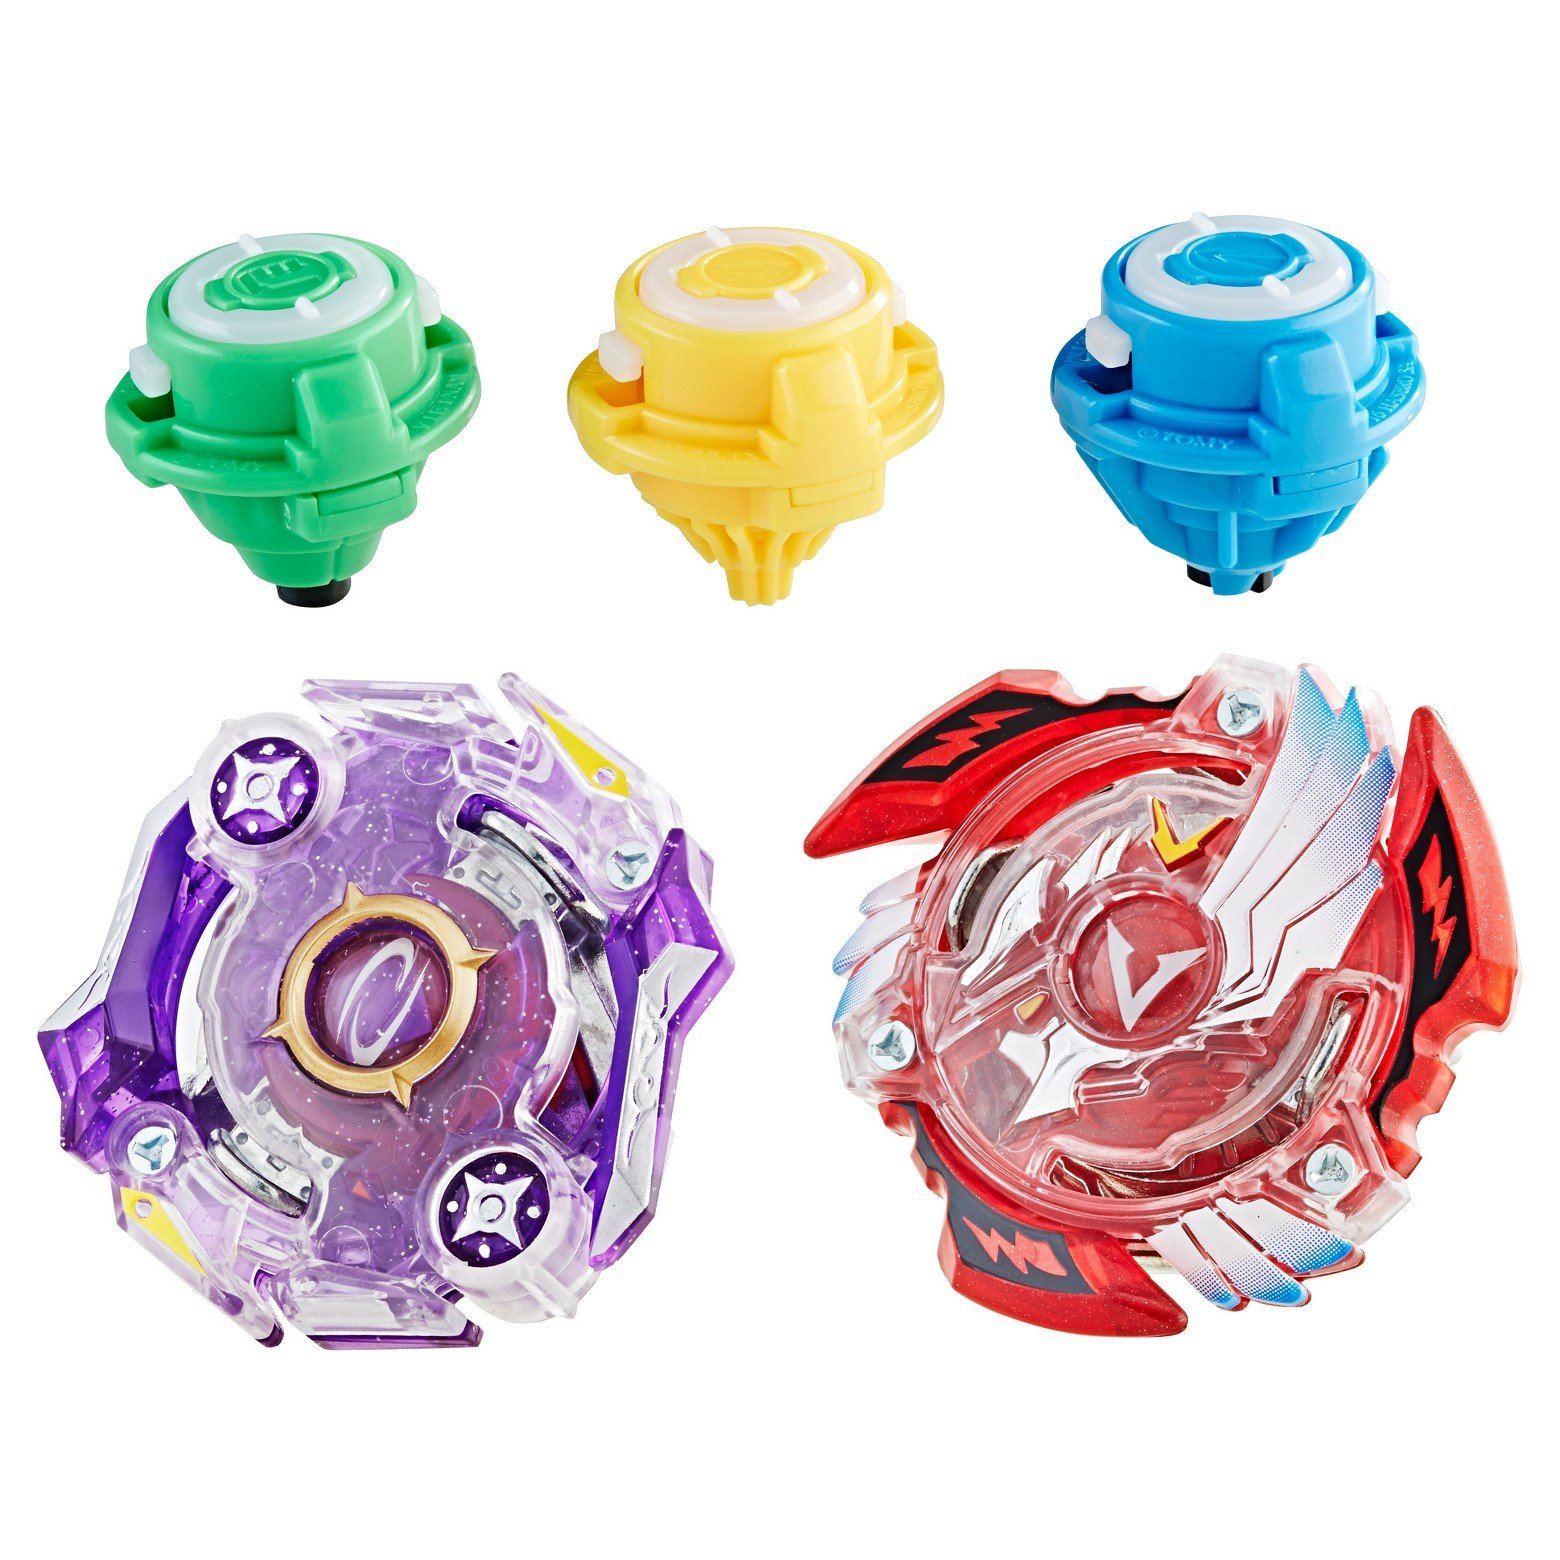 Beyblade Burst Apex Attack Pack by Beyblade